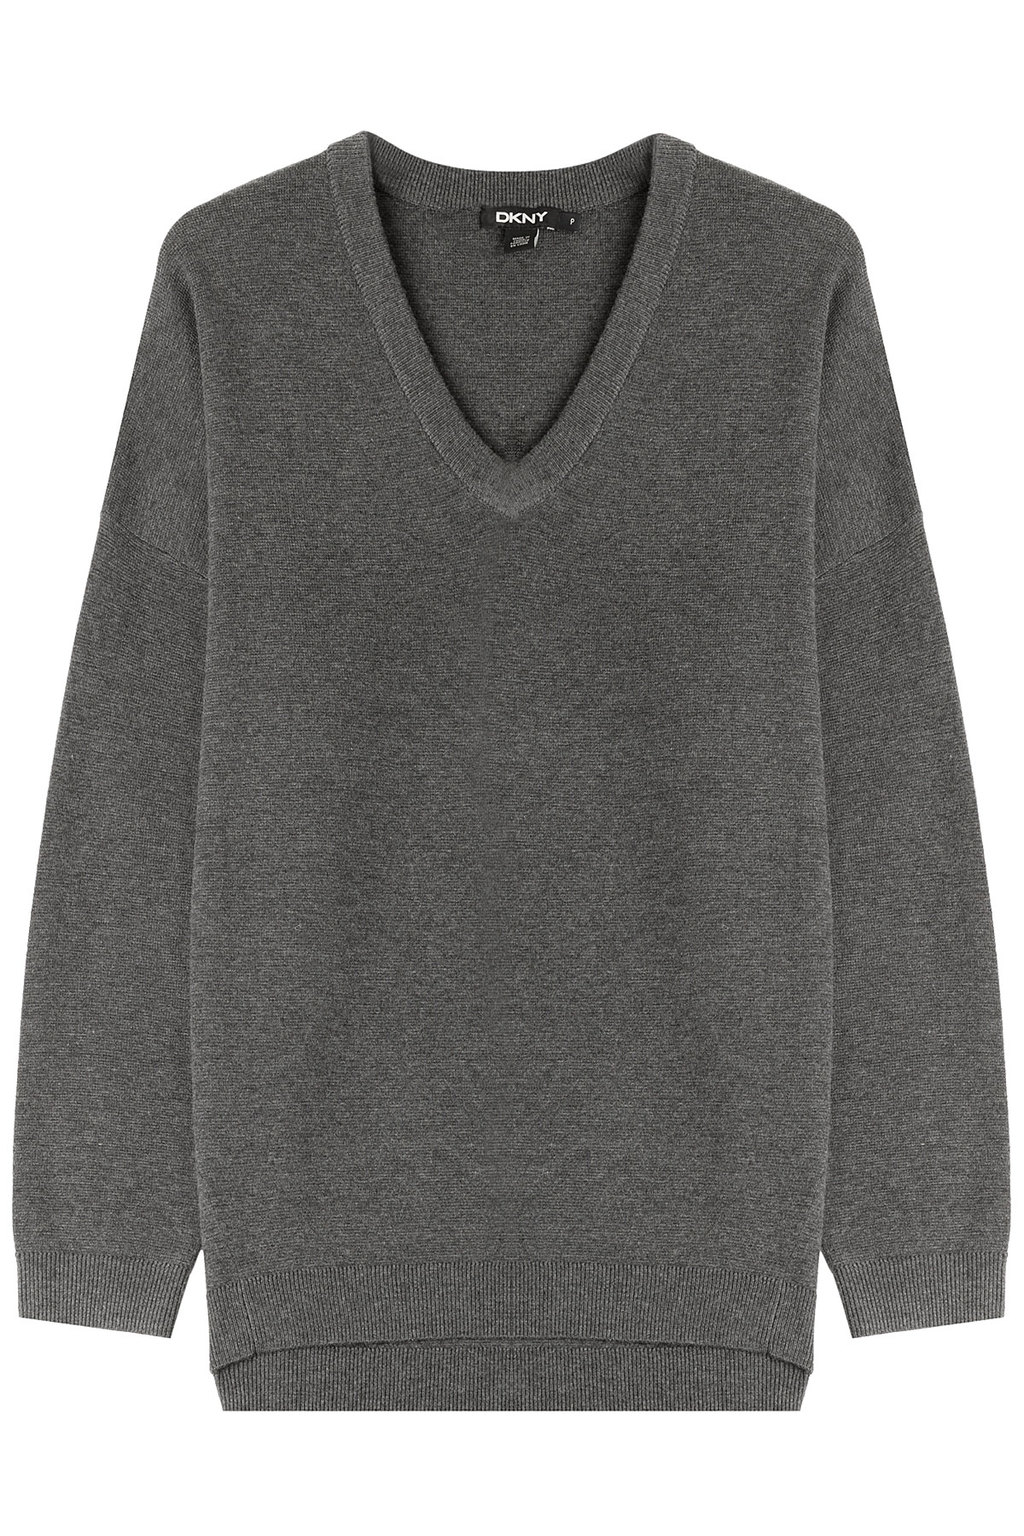 Pullover With Wool - neckline: v-neck; pattern: plain; length: below the bottom; style: standard; predominant colour: charcoal; occasions: casual, work, creative work; fibres: wool - mix; fit: standard fit; sleeve length: 3/4 length; sleeve style: standard; texture group: knits/crochet; pattern type: knitted - fine stitch; season: a/w 2015; wardrobe: basic